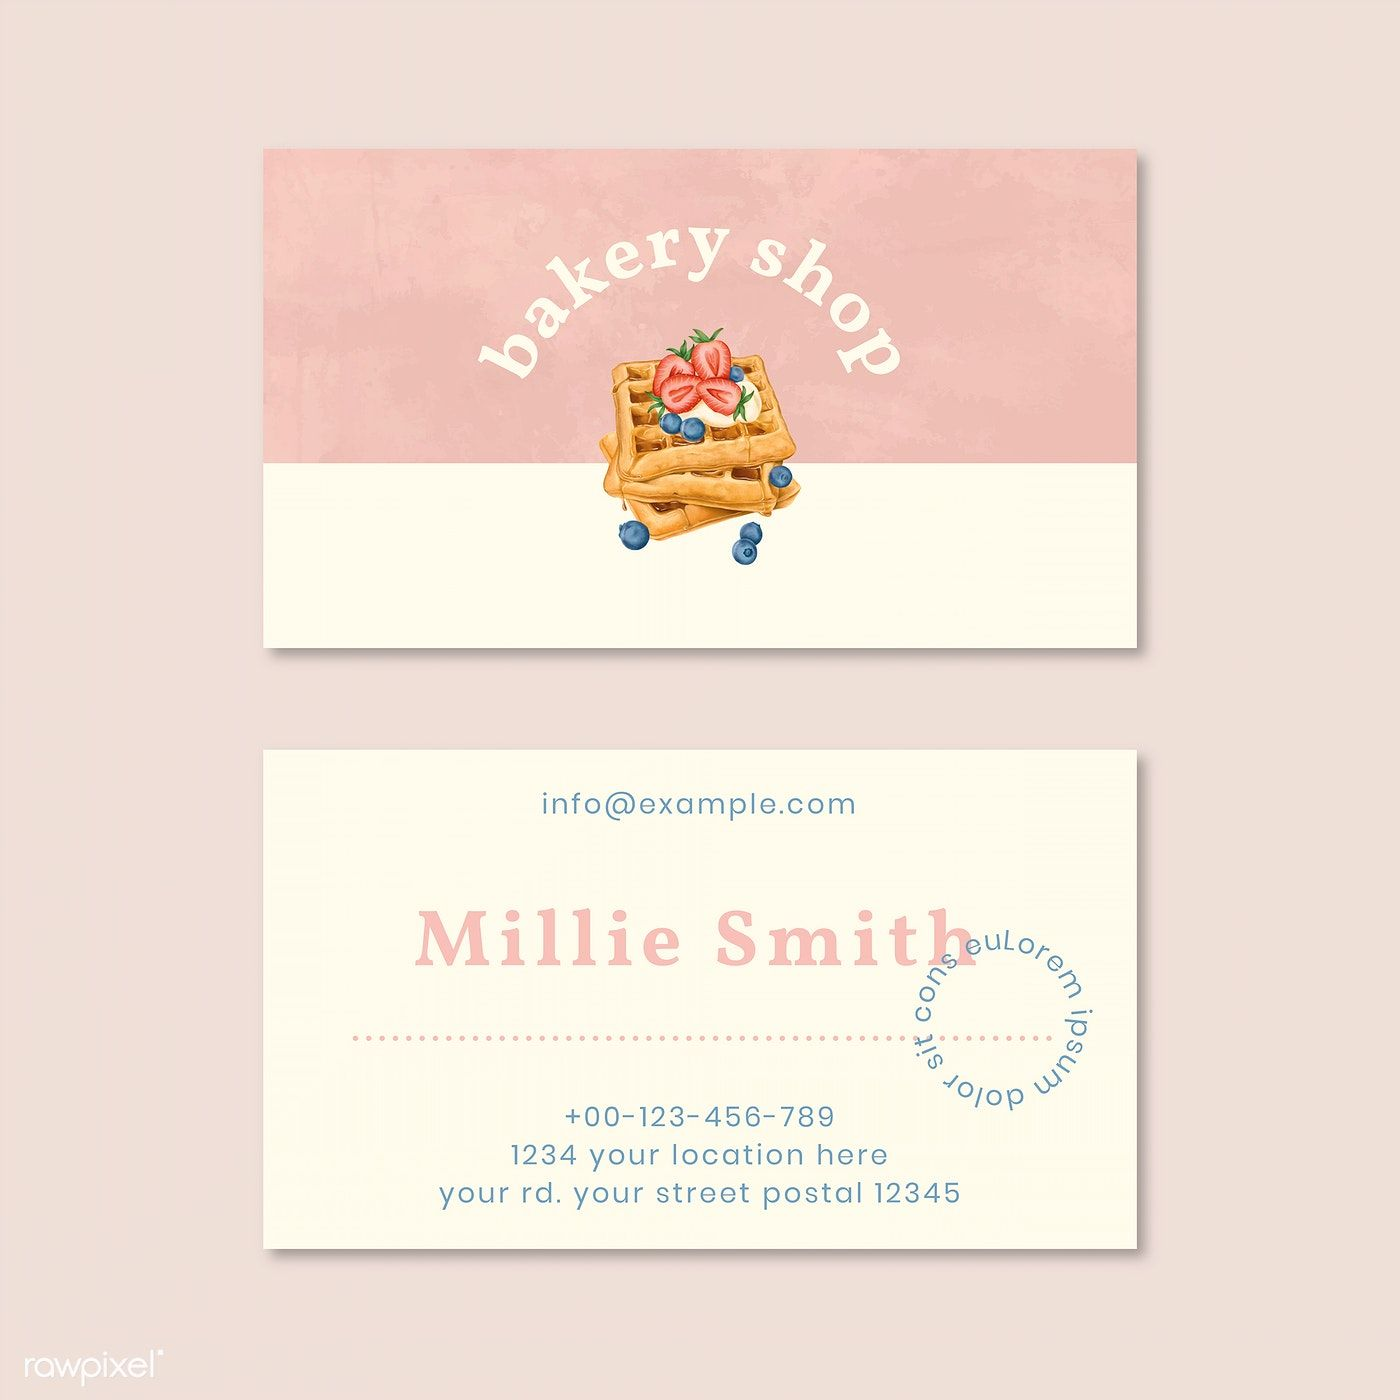 Hand Drawn Bakery Name Card Template Vector Free Image By Rawpixel Com Aew Business Card Mock Up Bakery Business Cards Bakery Business Cards Templates